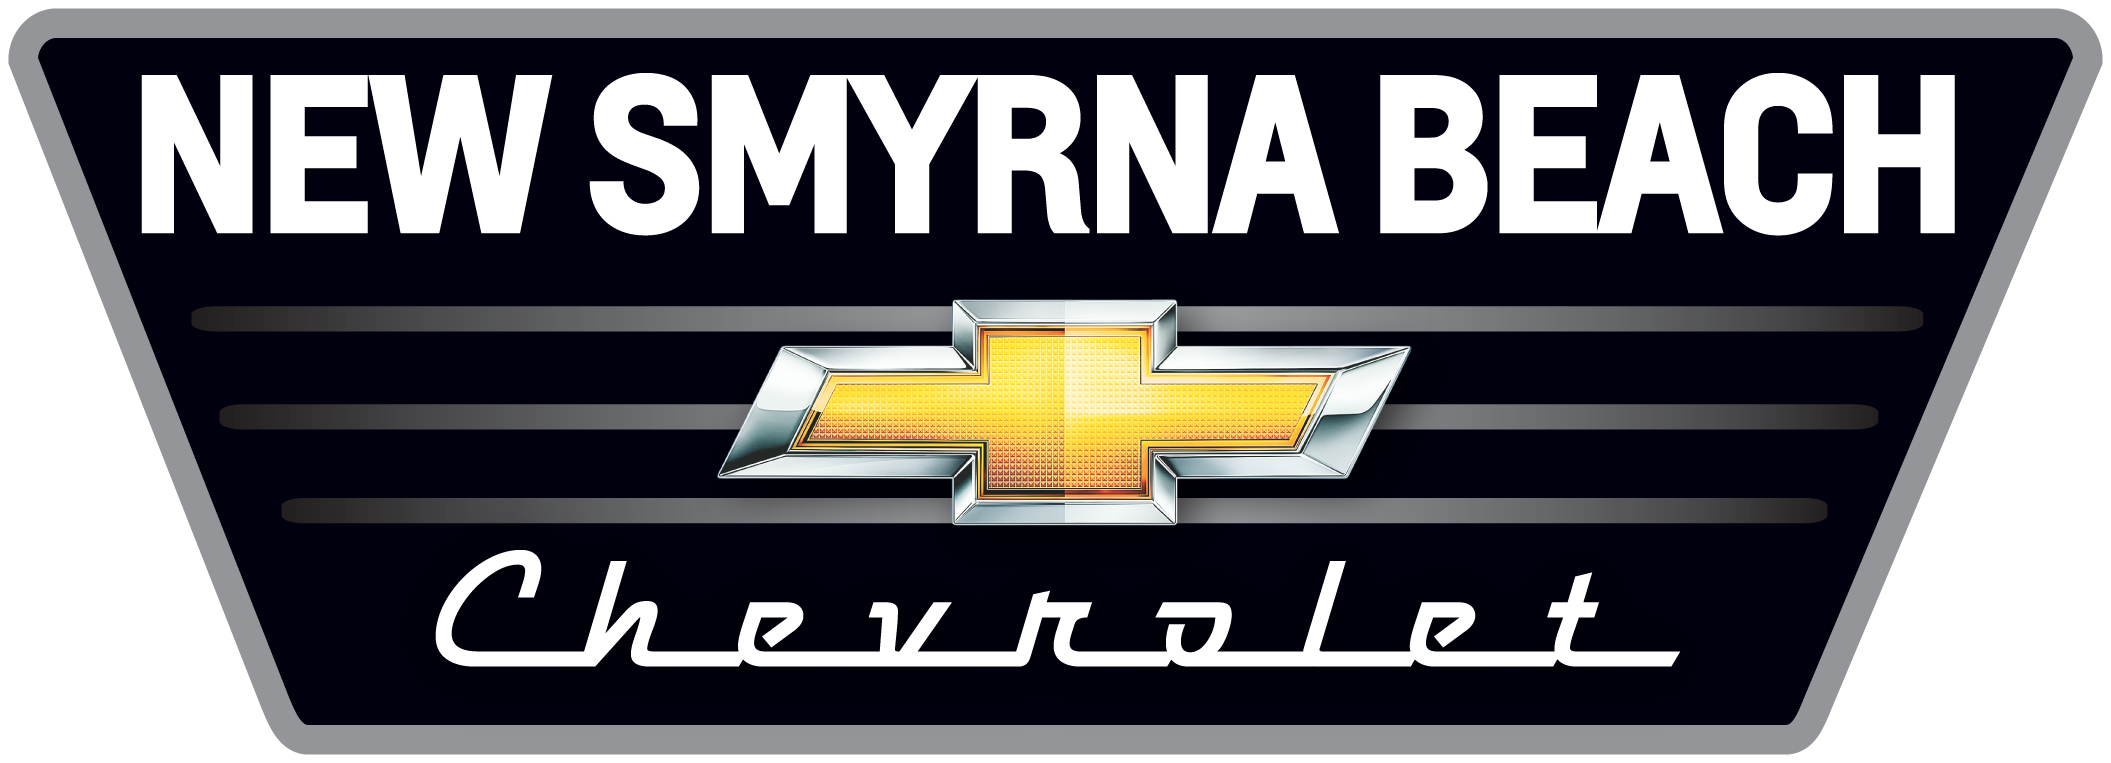 CHEVY LOGO.png